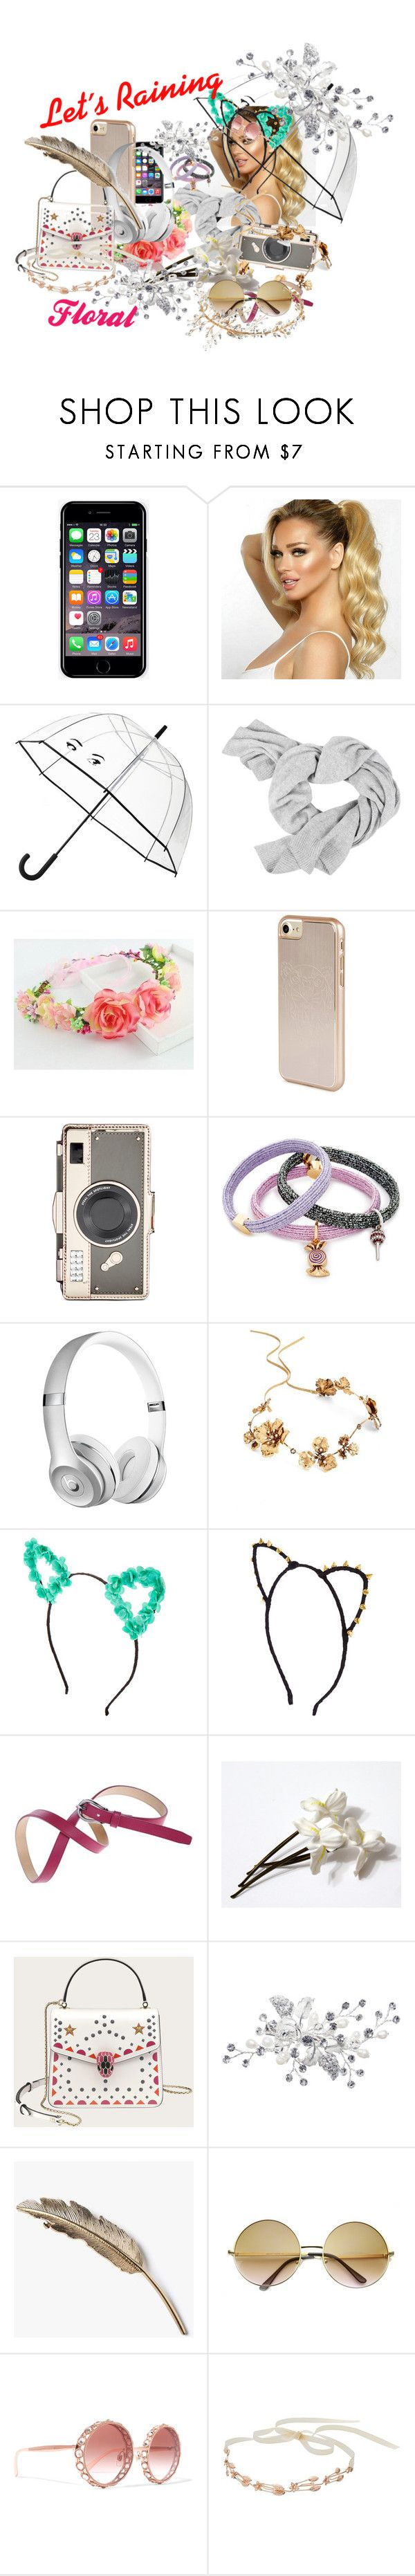 """Let´s Raining Floral"" by lisa-fischer-1 ❤ liked on Polyvore featuring Off-White, Kate Spade, Kenzo, Marc Jacobs, Twigs & Honey, ZeroUV, Dolce&Gabbana, LC Lauren Conrad and Nina"